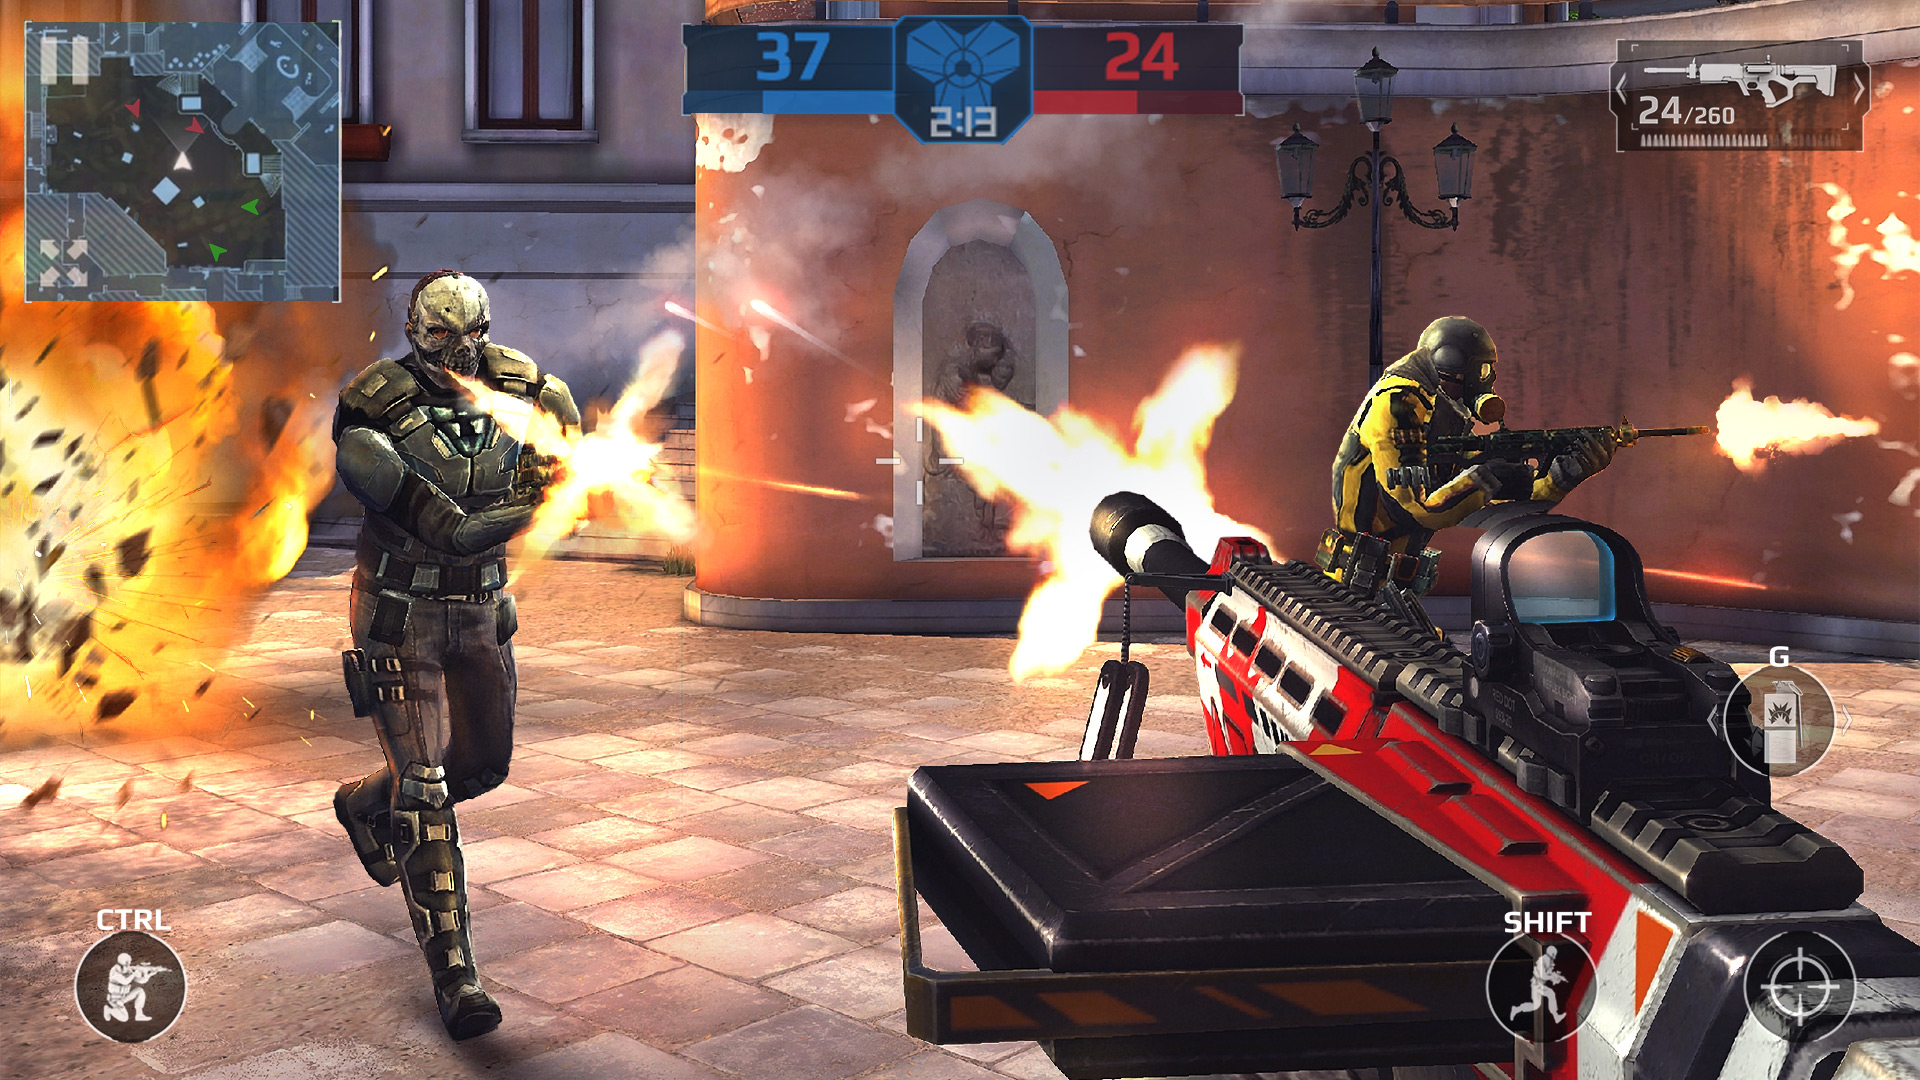 call of duty black ops 2 crack torrent by samuel by tuto games